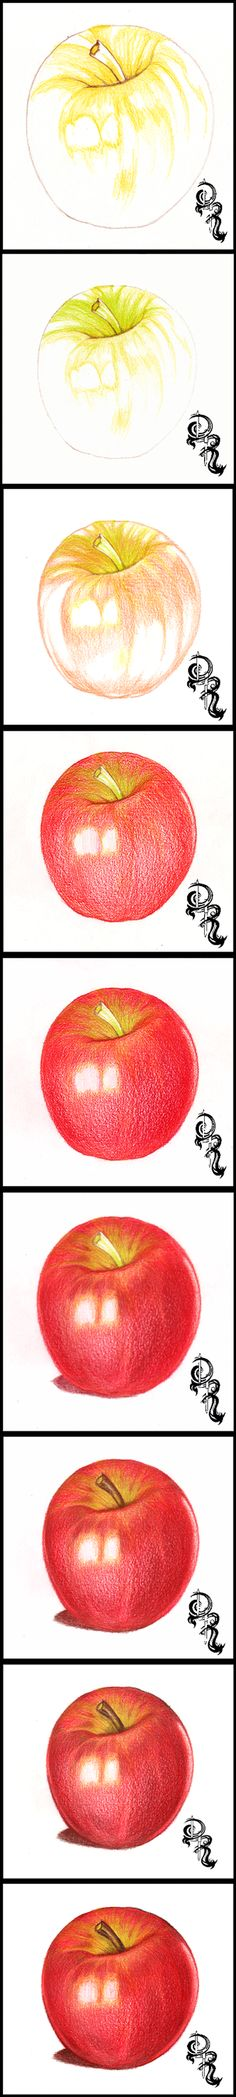 How to Draw an Apple with Colored Pencils. A step-by-step image of a colored pencil artlesson by Derrick Rathgeber.